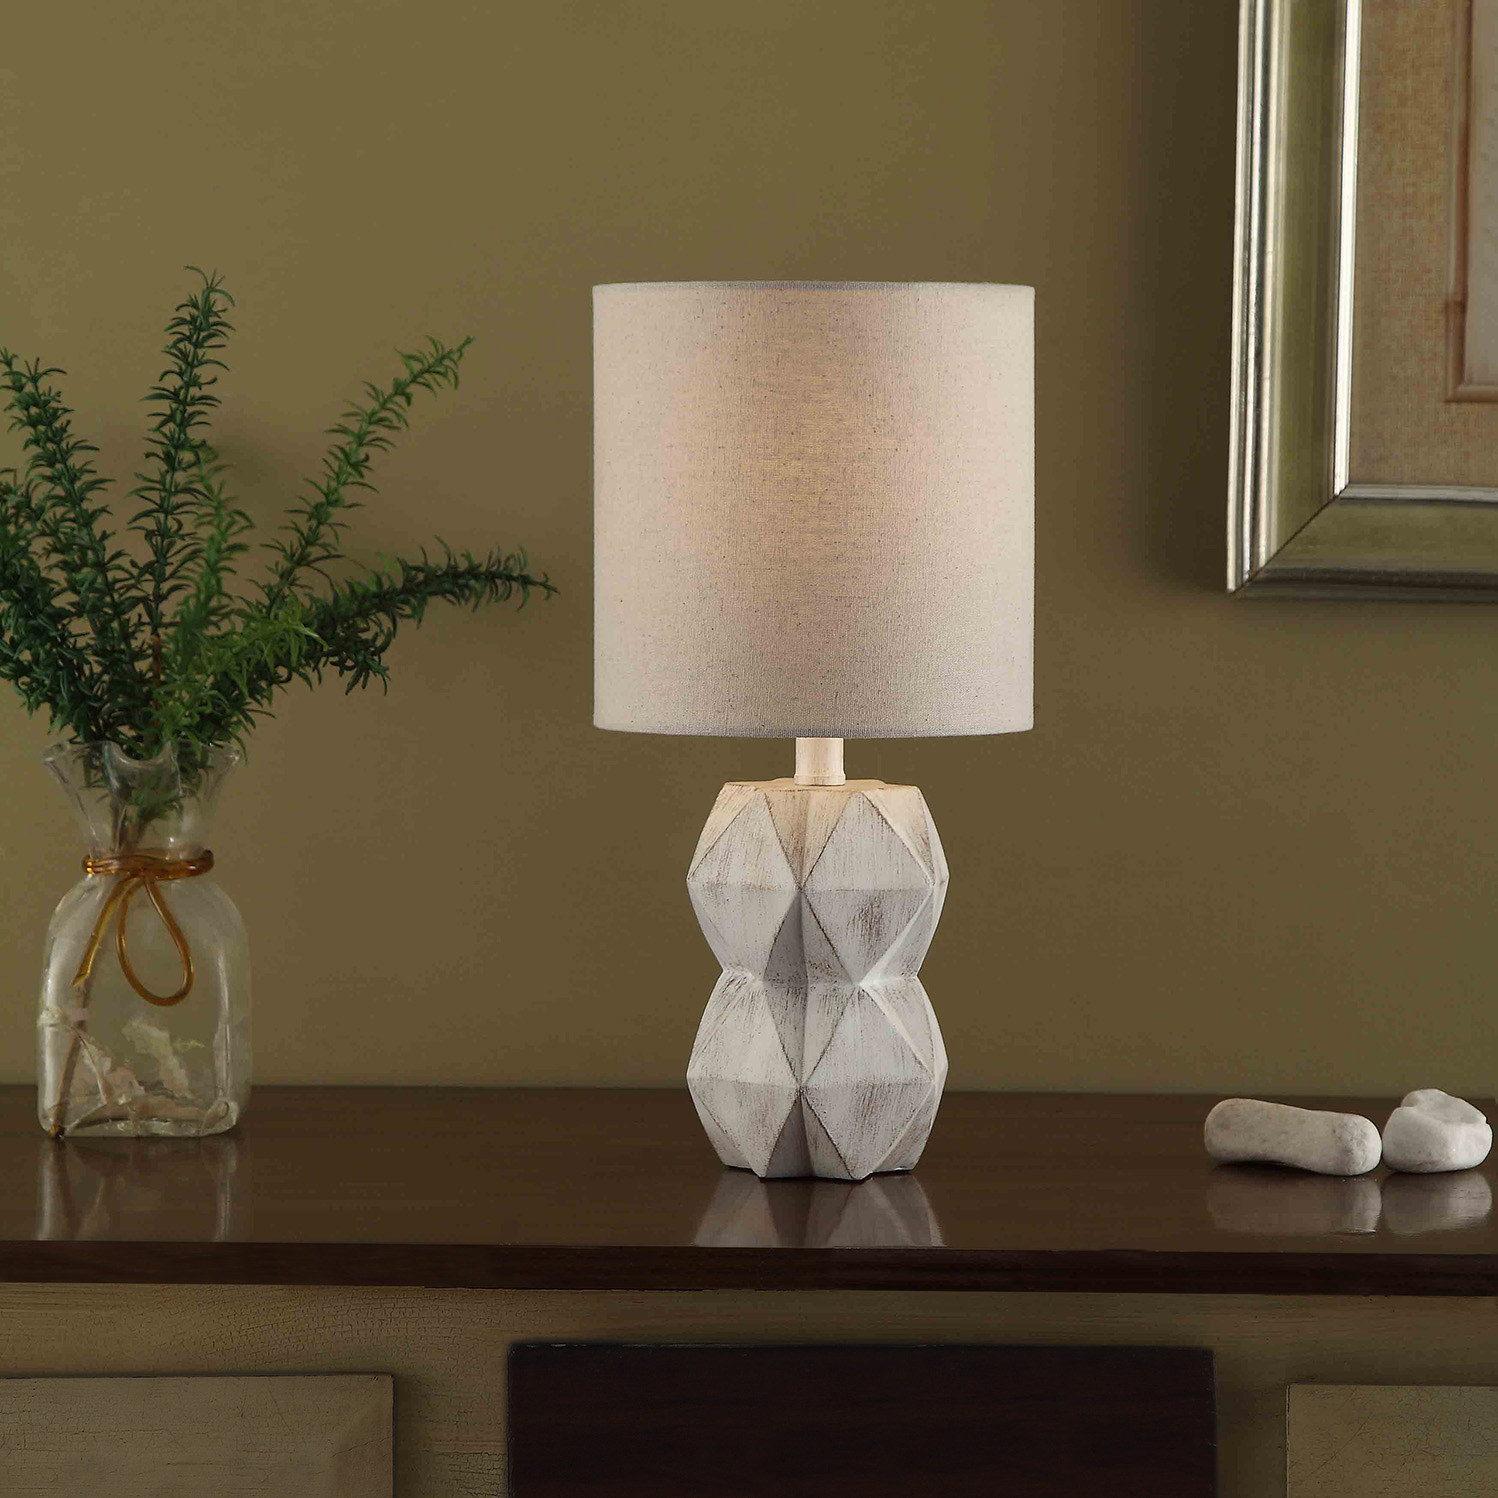 The lamp, which has geometric facets, in white